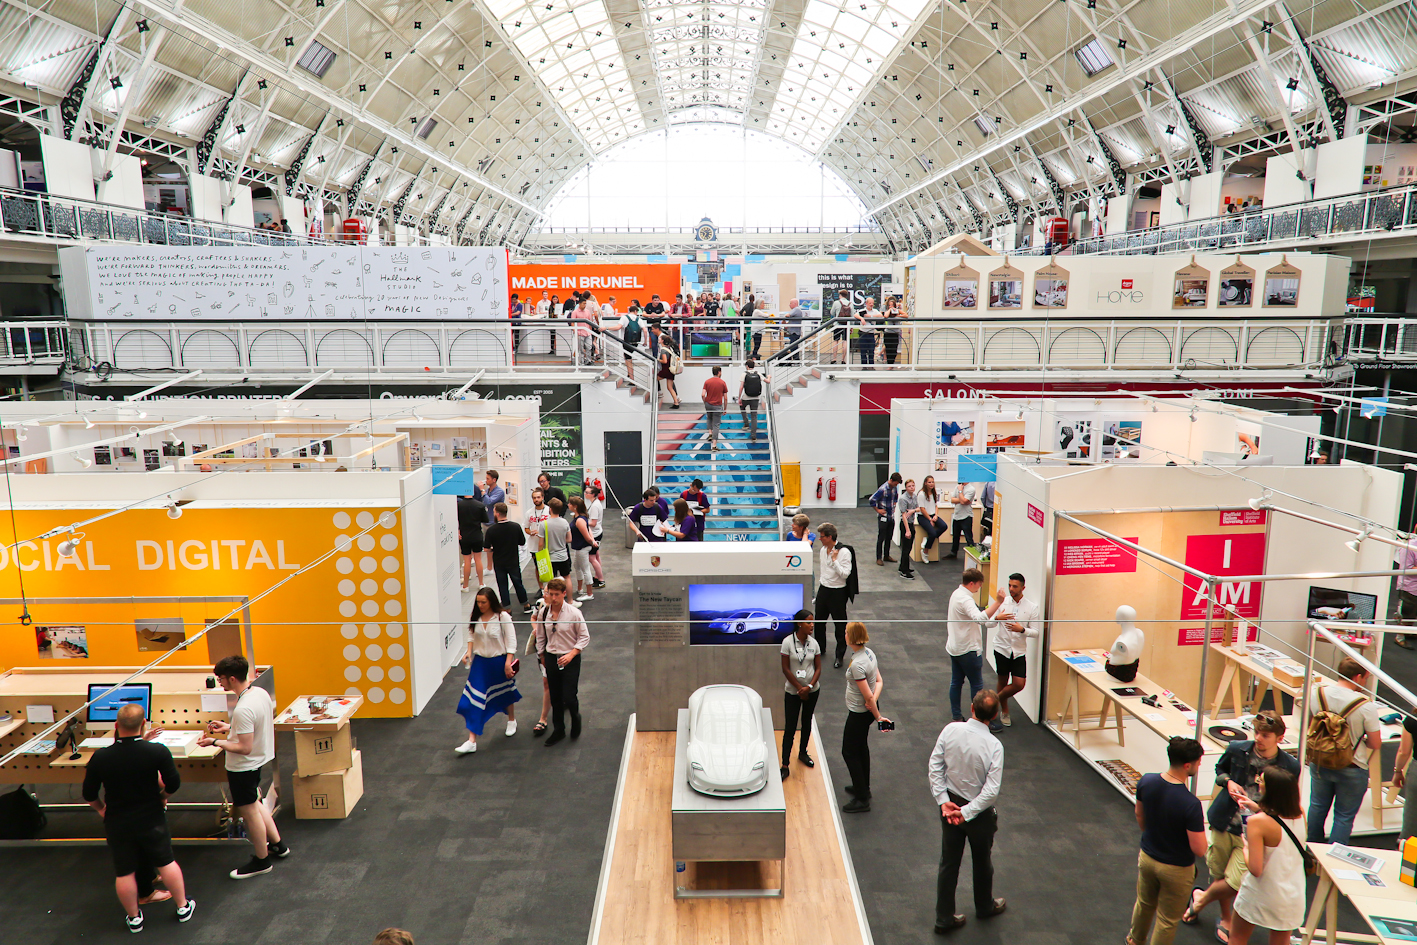 New Designers London 2019 Event Guide new designers london 2019 event guide NEW DESIGNERS LONDON 2019 EVENT GUIDE Low Res Week 2 New Designers 166